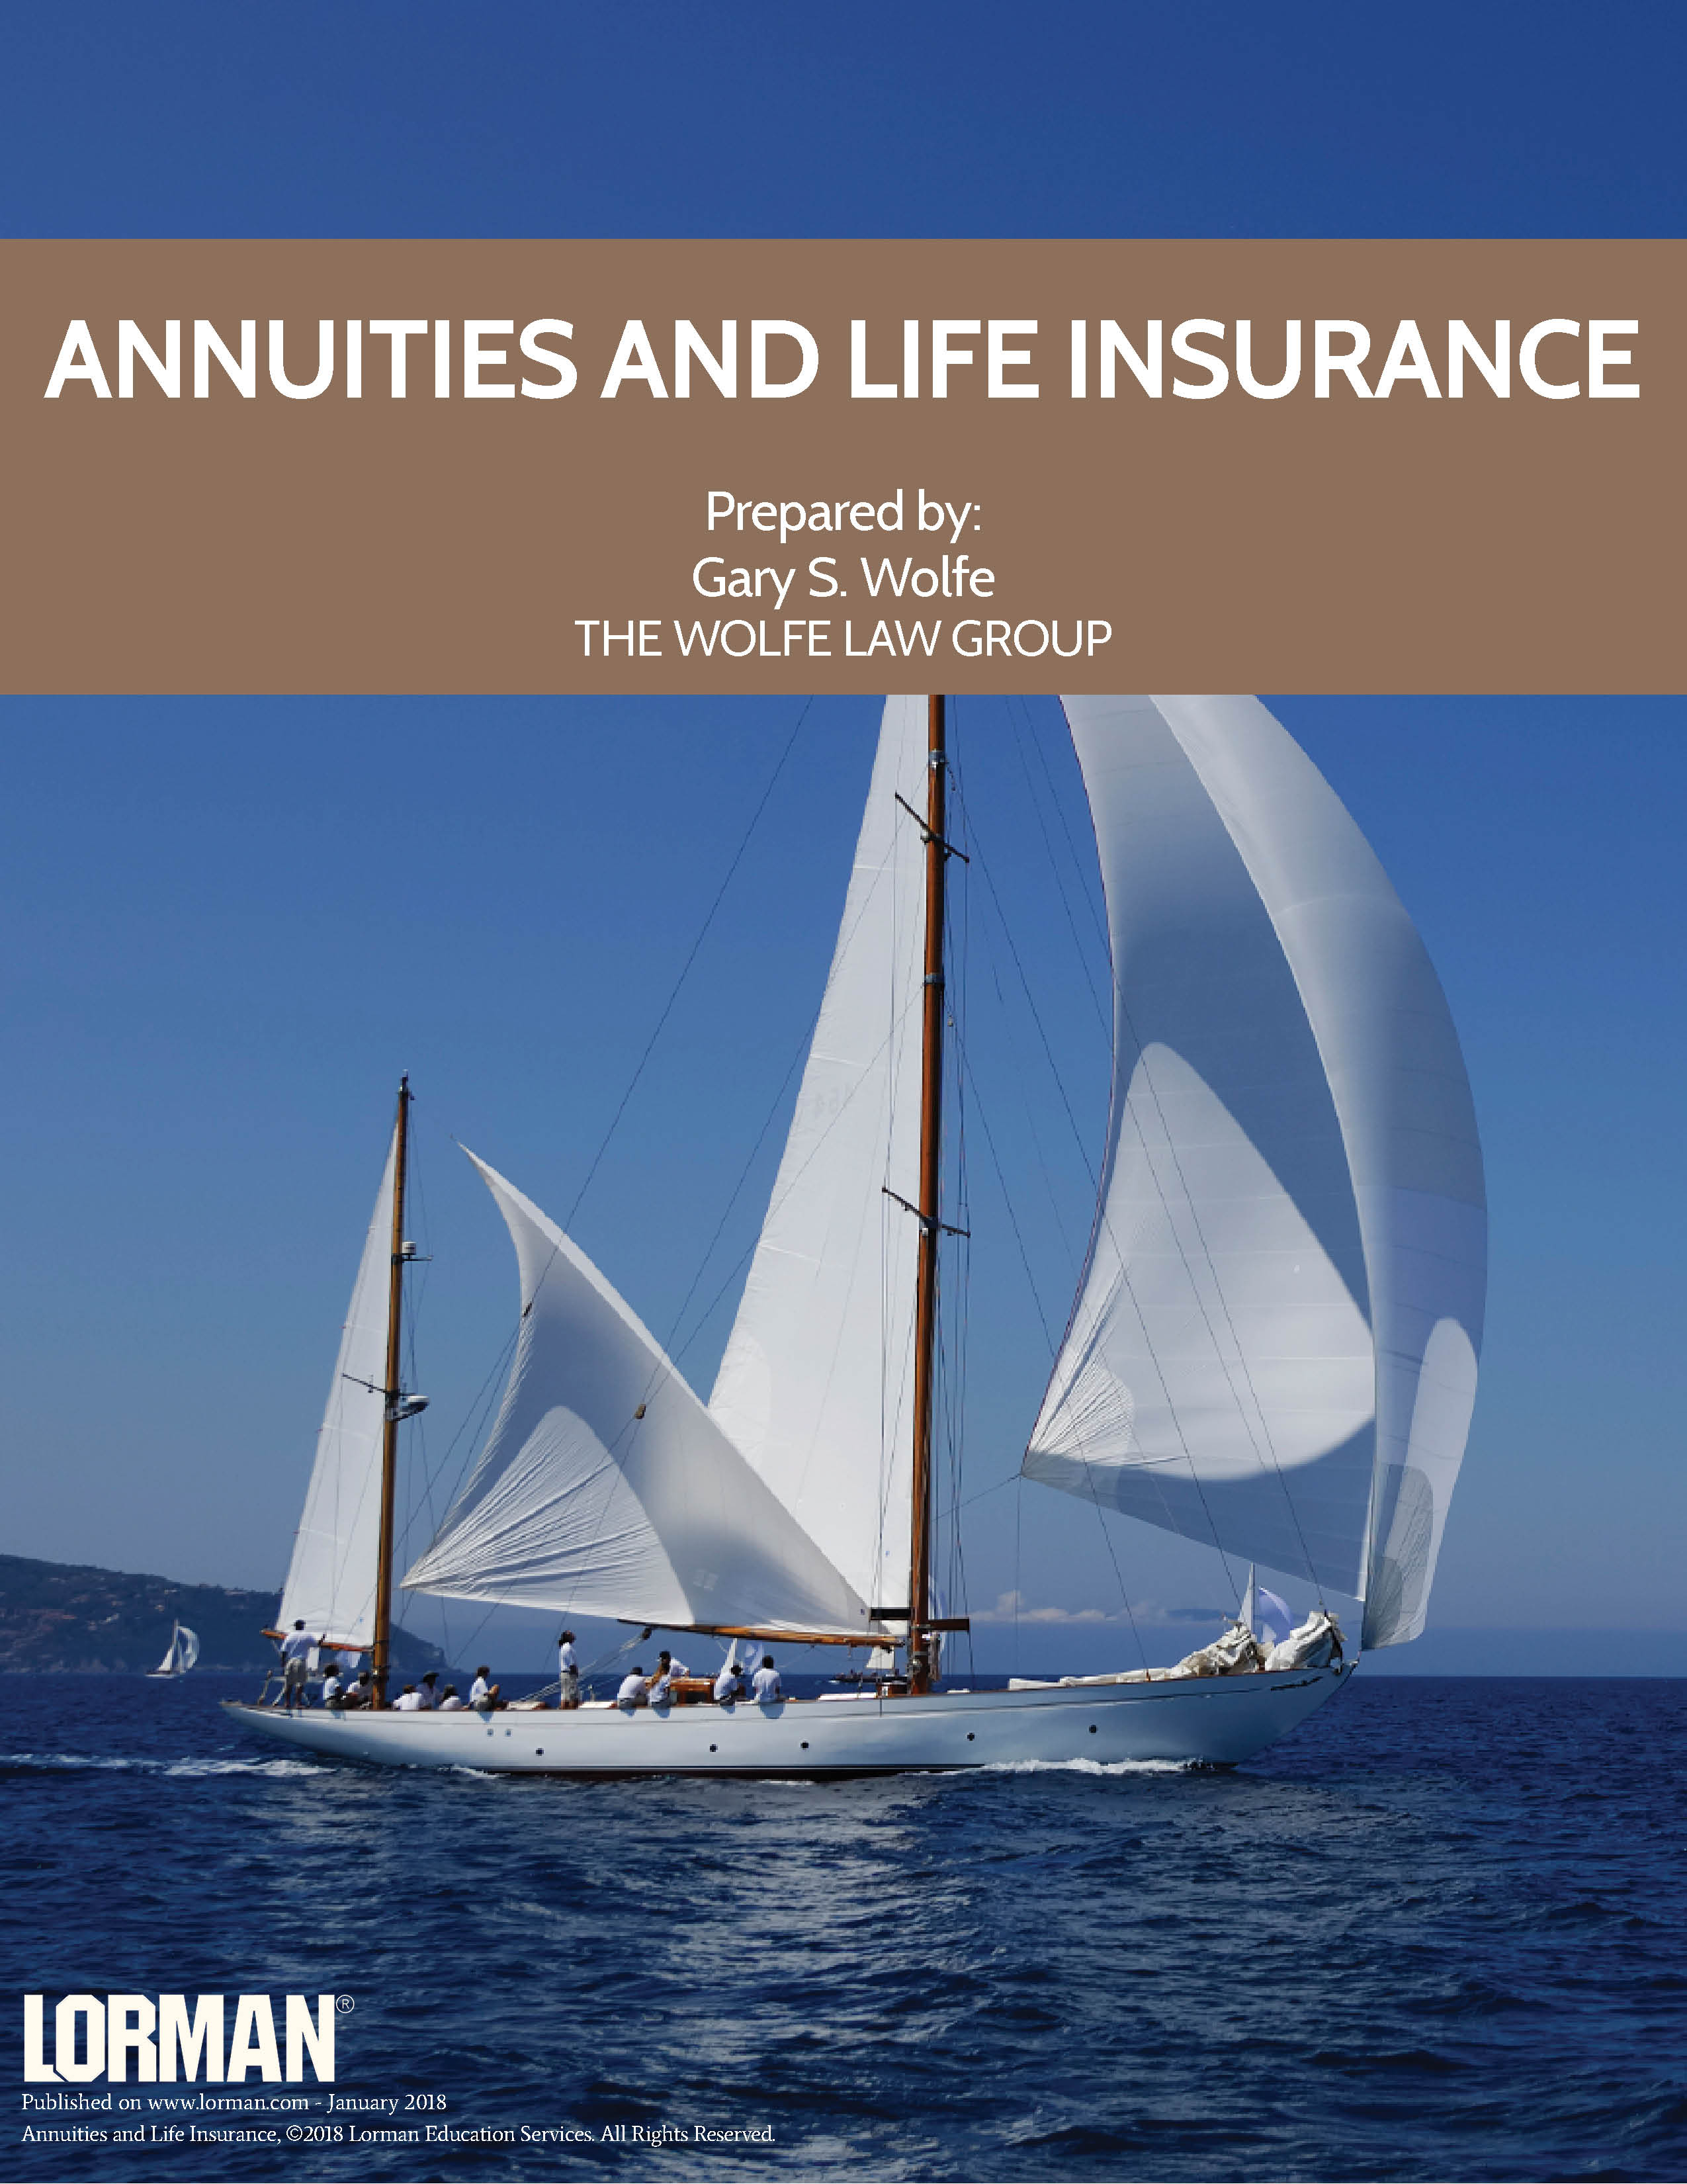 Annuities and Life Insurance